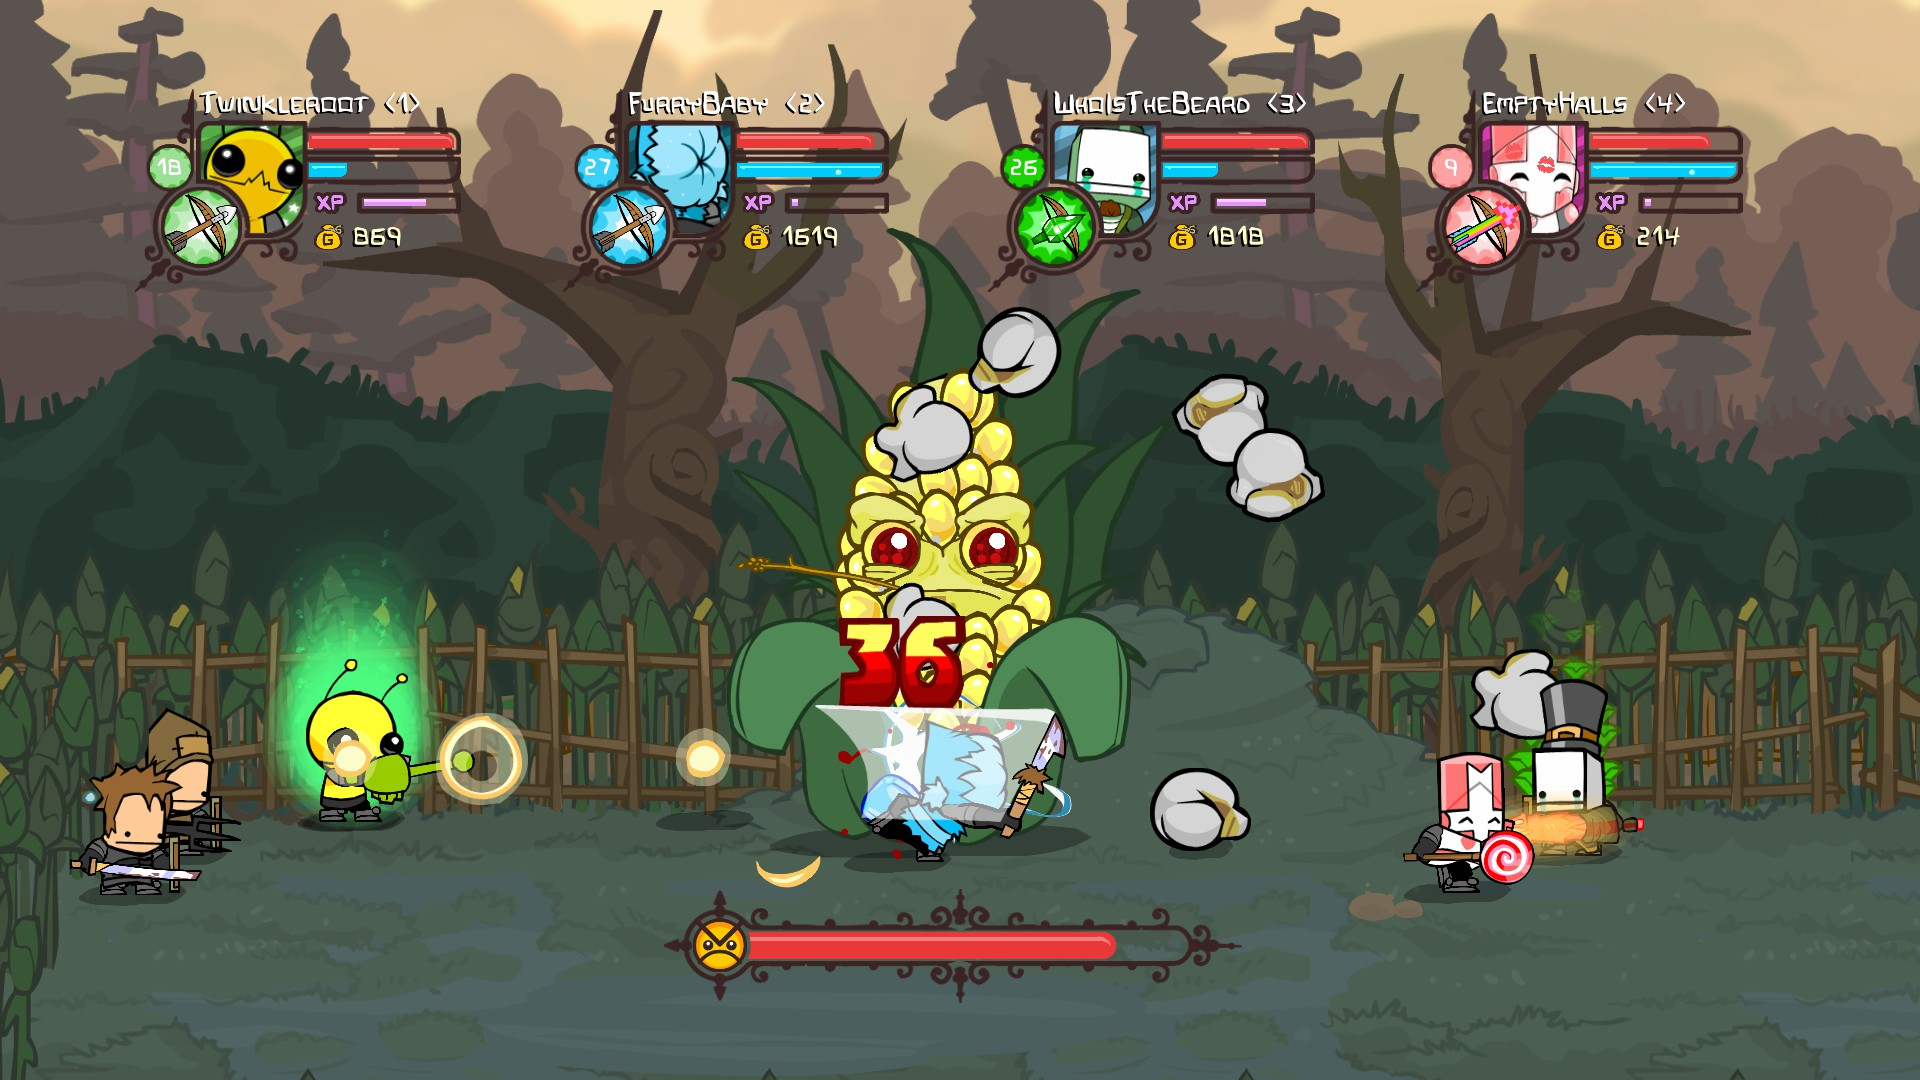 A screengrab from the game Castle Crashers